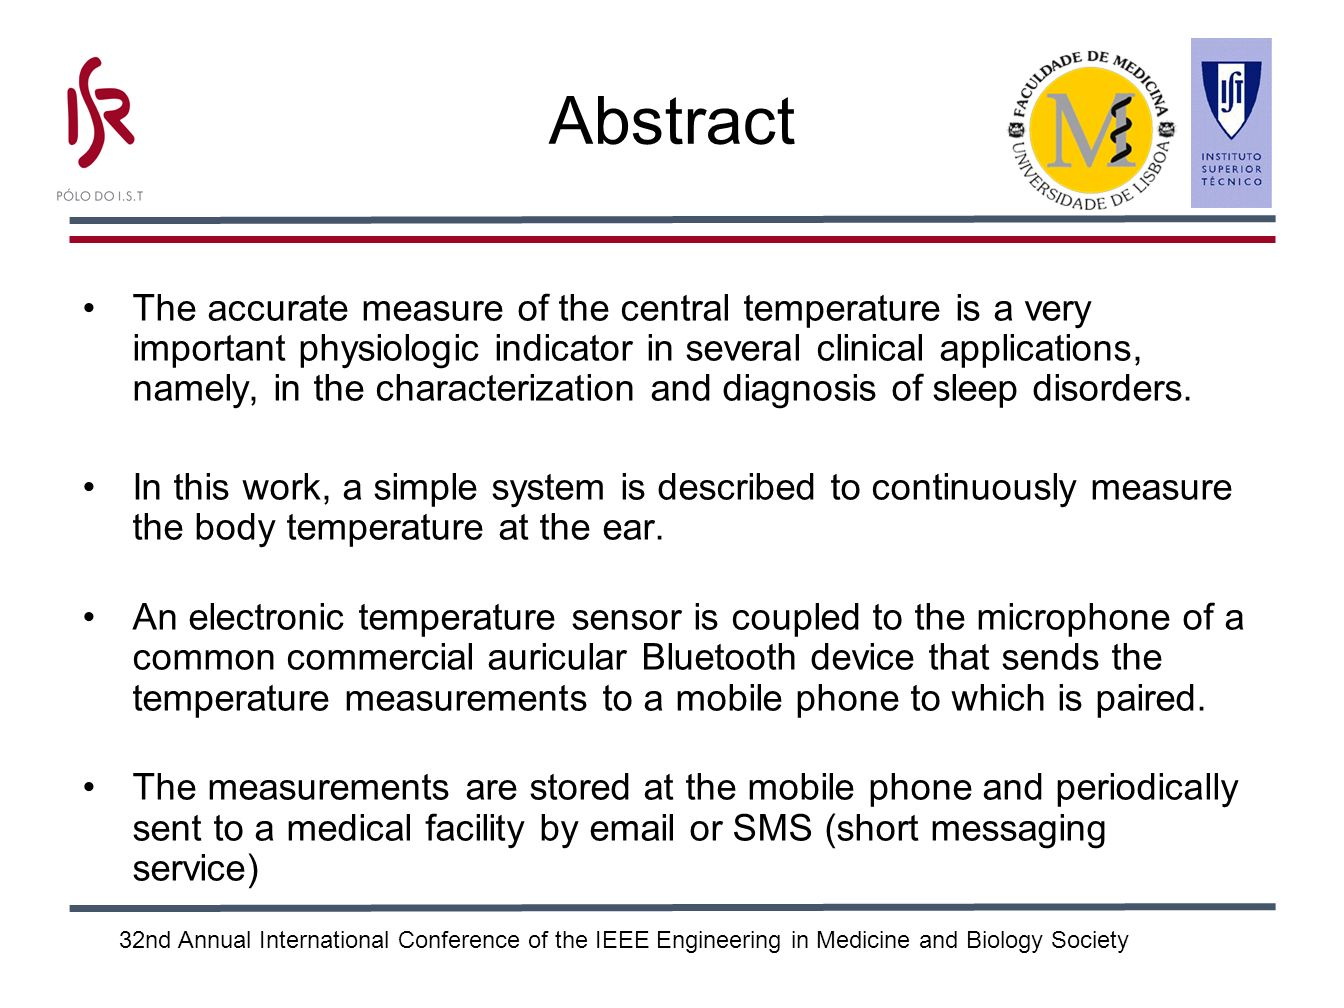 32nd Annual International Conference of the IEEE Engineering in Medicine and Biology Society Abstract The accurate measure of the central temperature is a very important physiologic indicator in several clinical applications, namely, in the characterization and diagnosis of sleep disorders.